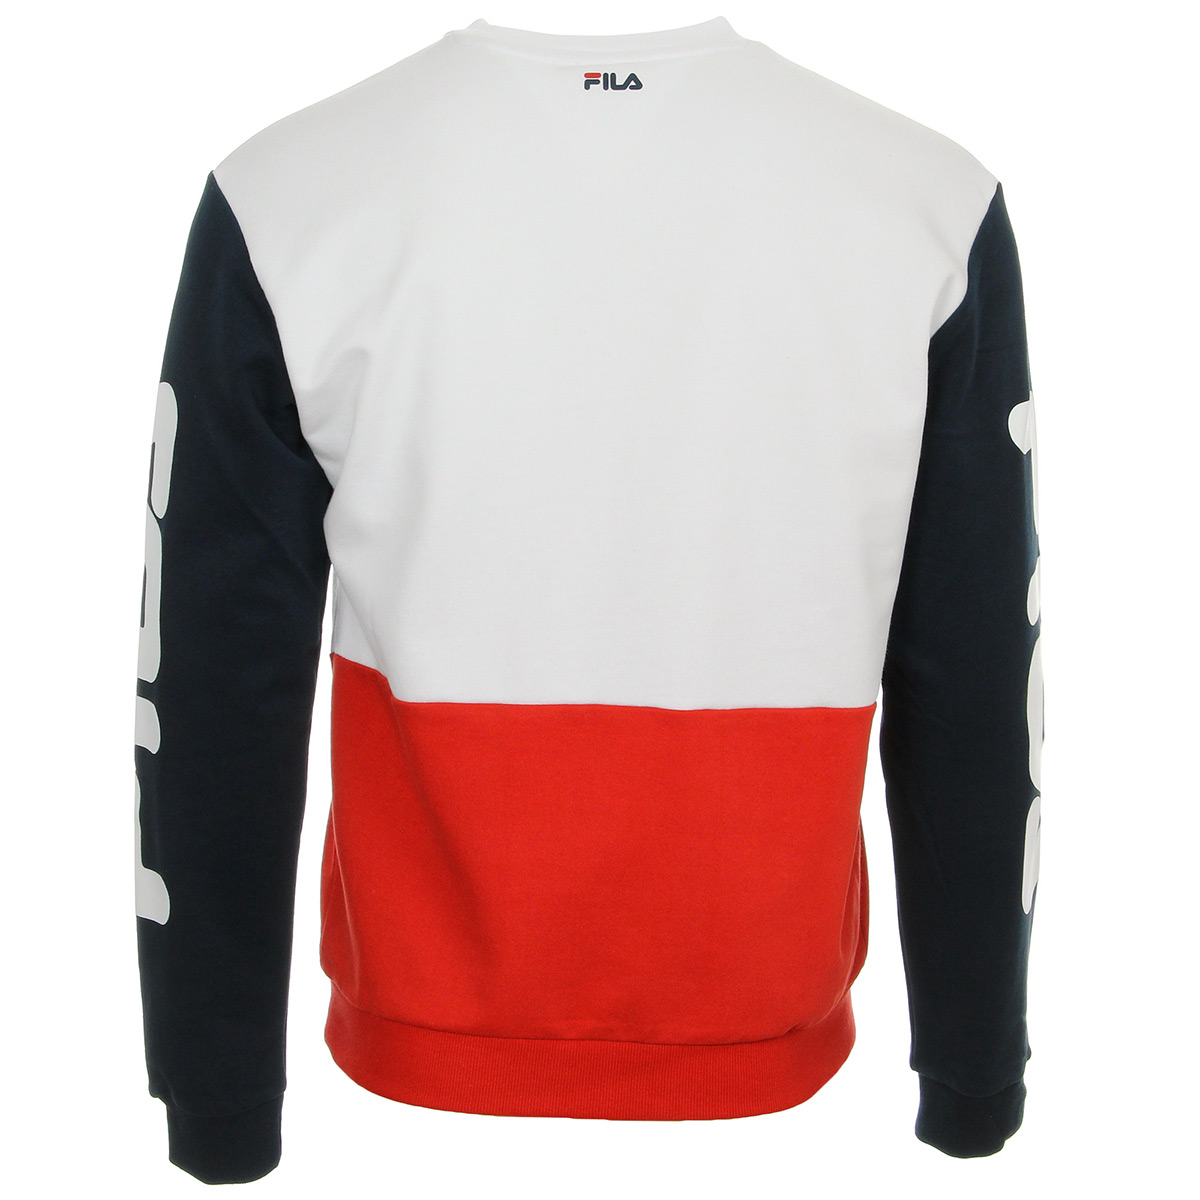 Fila Jamie Crew Sweat 681849I43, Sweats